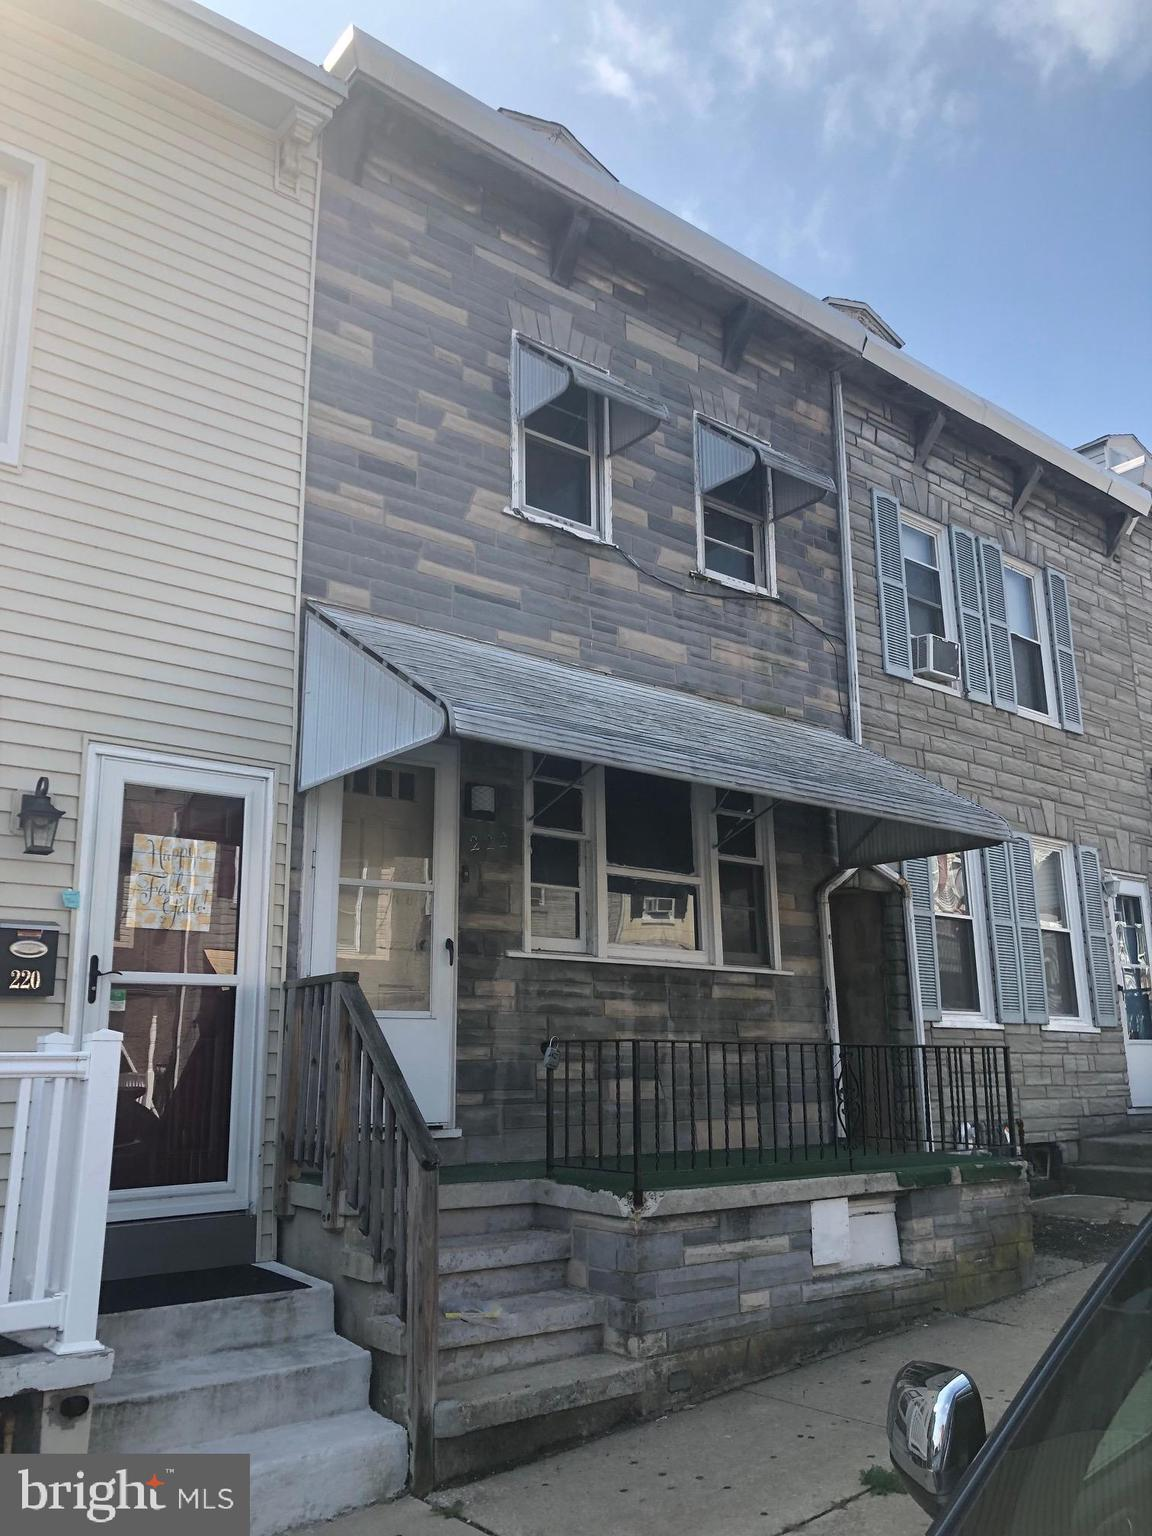 222 CHESTNUT STREET, WEST READING, PA 19611